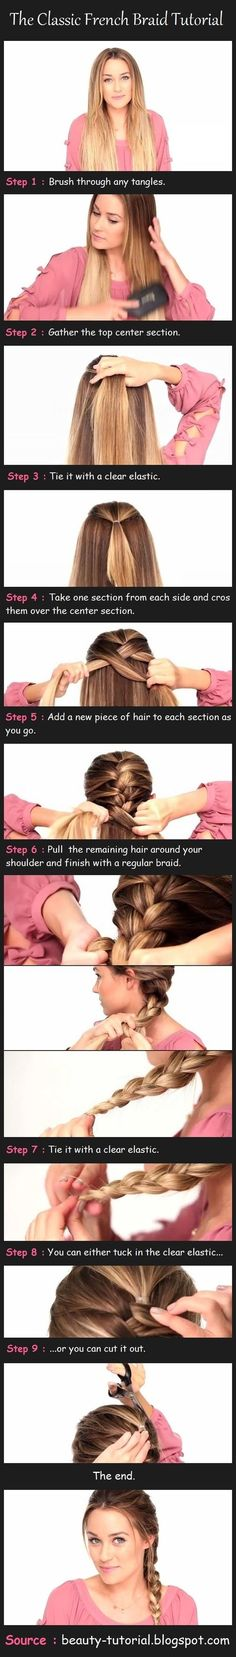 DIY Braided Hair Tutorials for Winter The Classic French Braid Step-By-Step Pictorial - It's all about using a clear plastic hair tie!The Classic French Braid Step-By-Step Pictorial - It's all about using a clear plastic hair tie! Coiffure Hair, Tips Belleza, About Hair, Hair Day, Pretty Hairstyles, Sport Hairstyles, Diy Hairstyles, Easy Little Girl Hairstyles, Fishtail Hairstyles